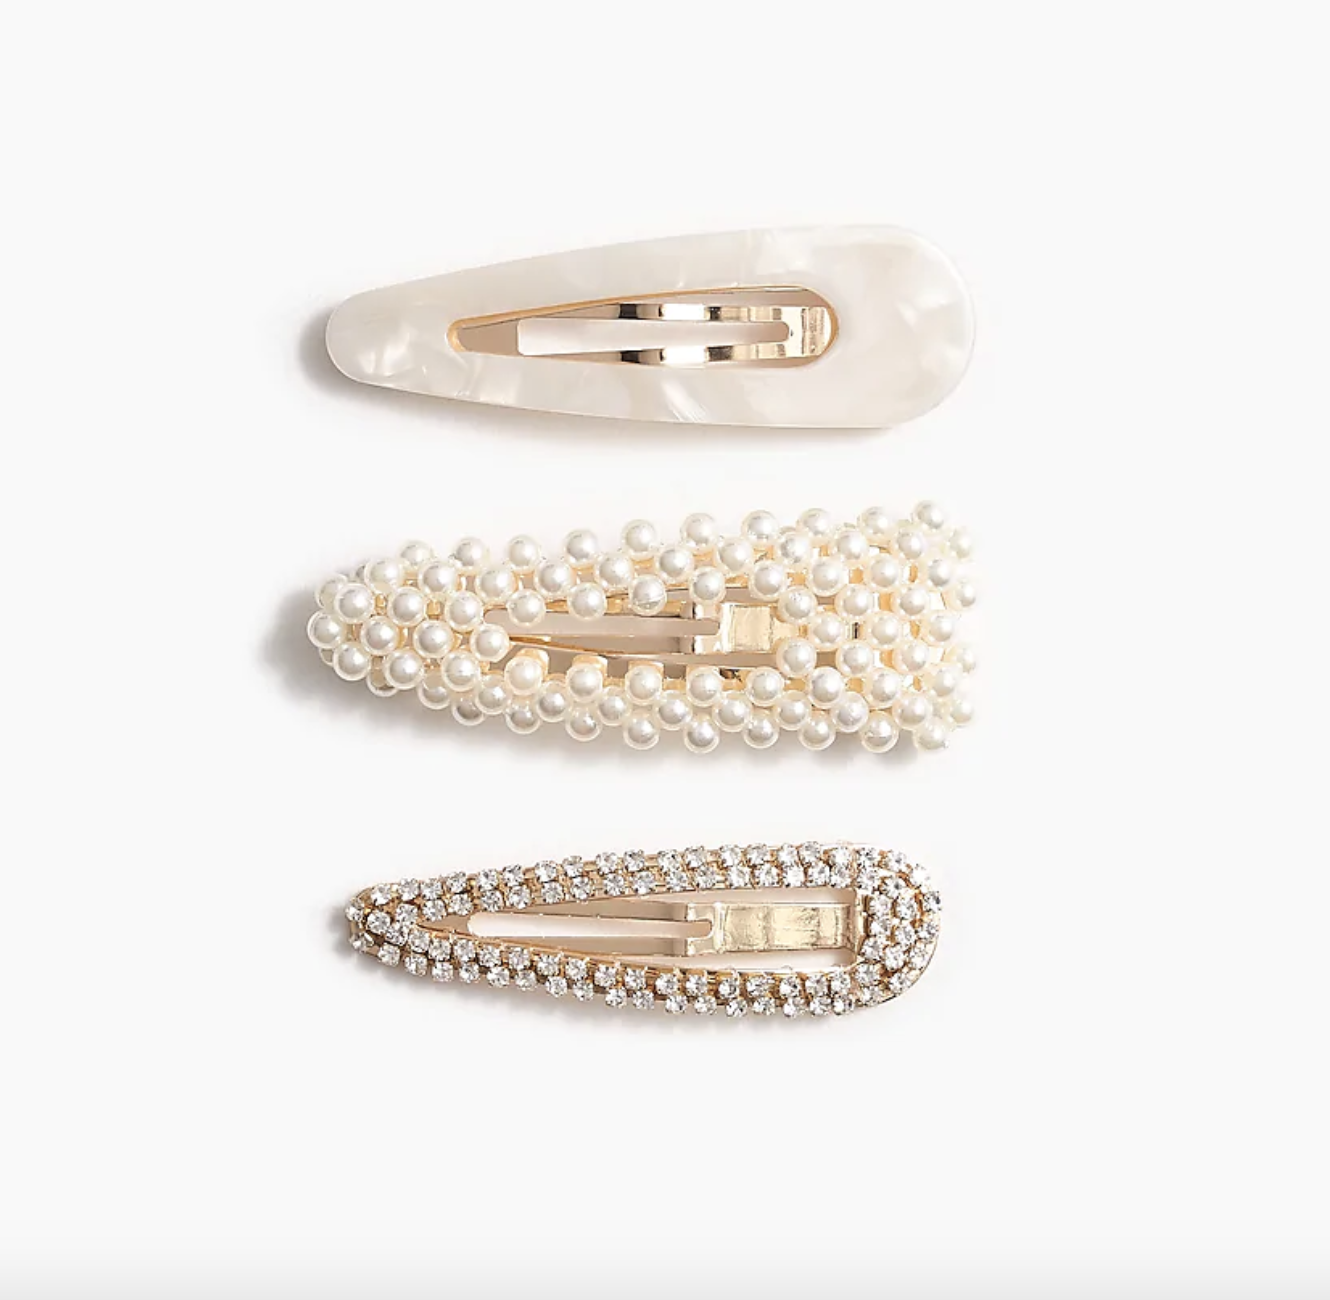 Three different-styled pearl clips — the top one plain acrylic, the middle one pearl-studded, and the third one covered in rhinestones — against a plain background against a plain background